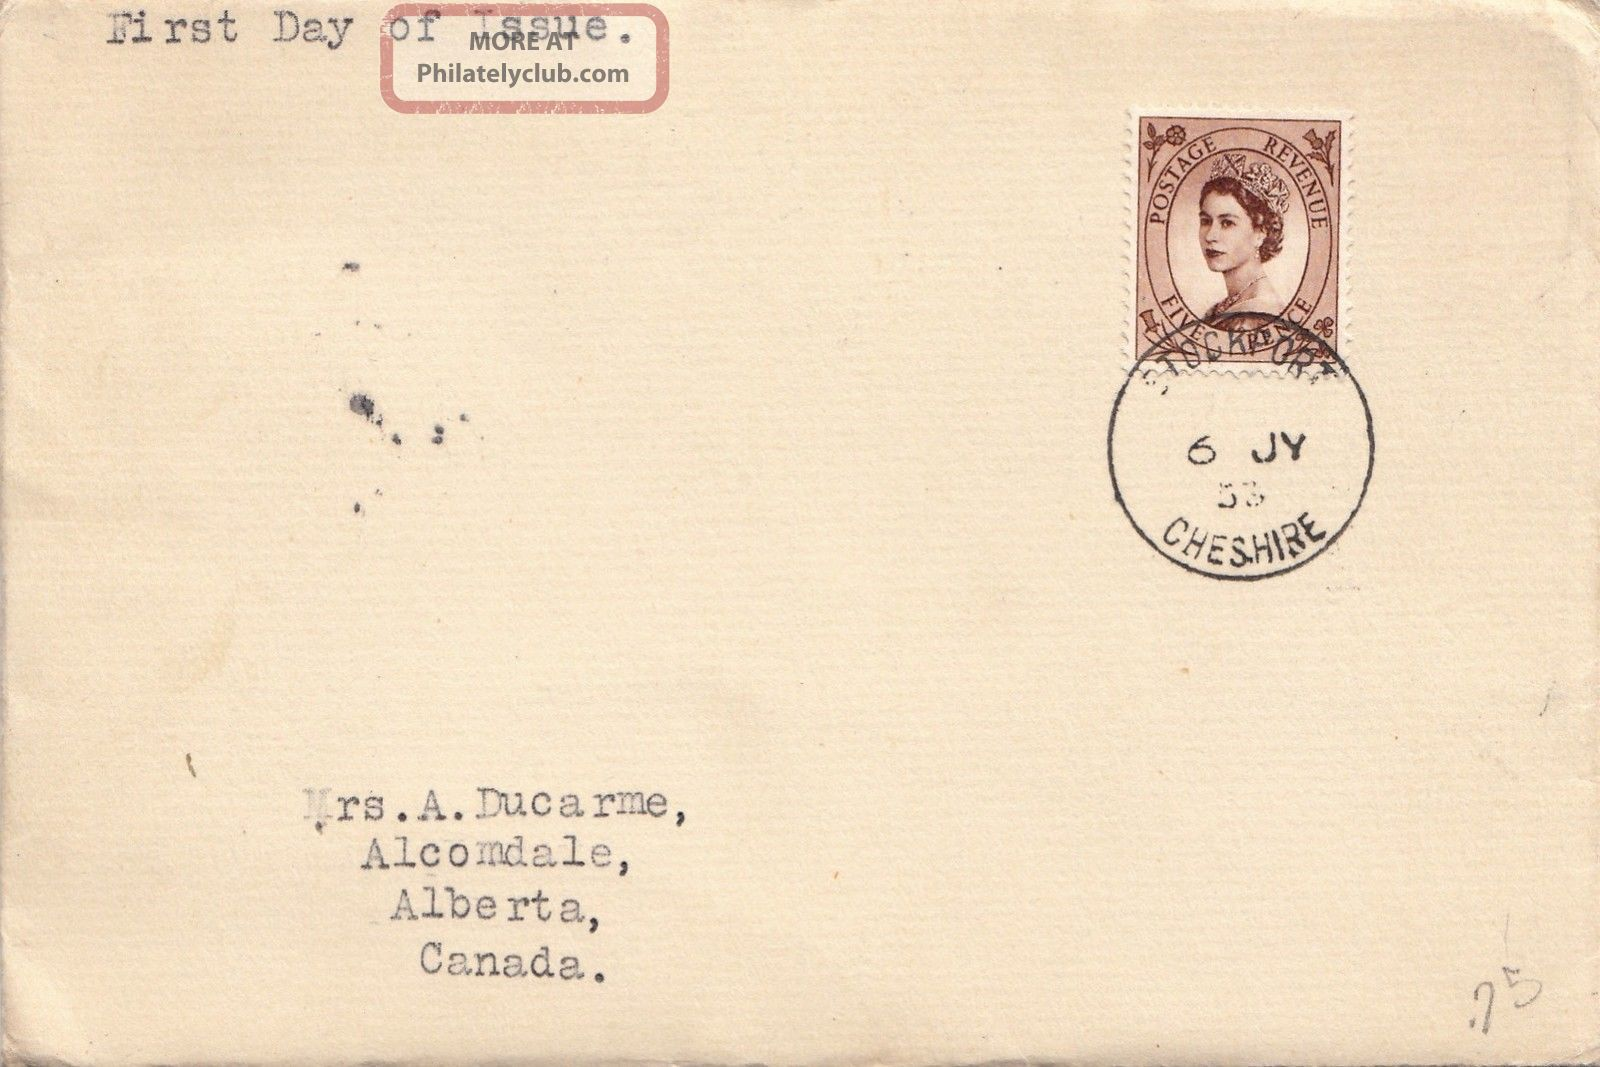 (21984) Gb Fdc 5d Wilding To Canada - Stockport 6 July 1953 First Day Covers photo